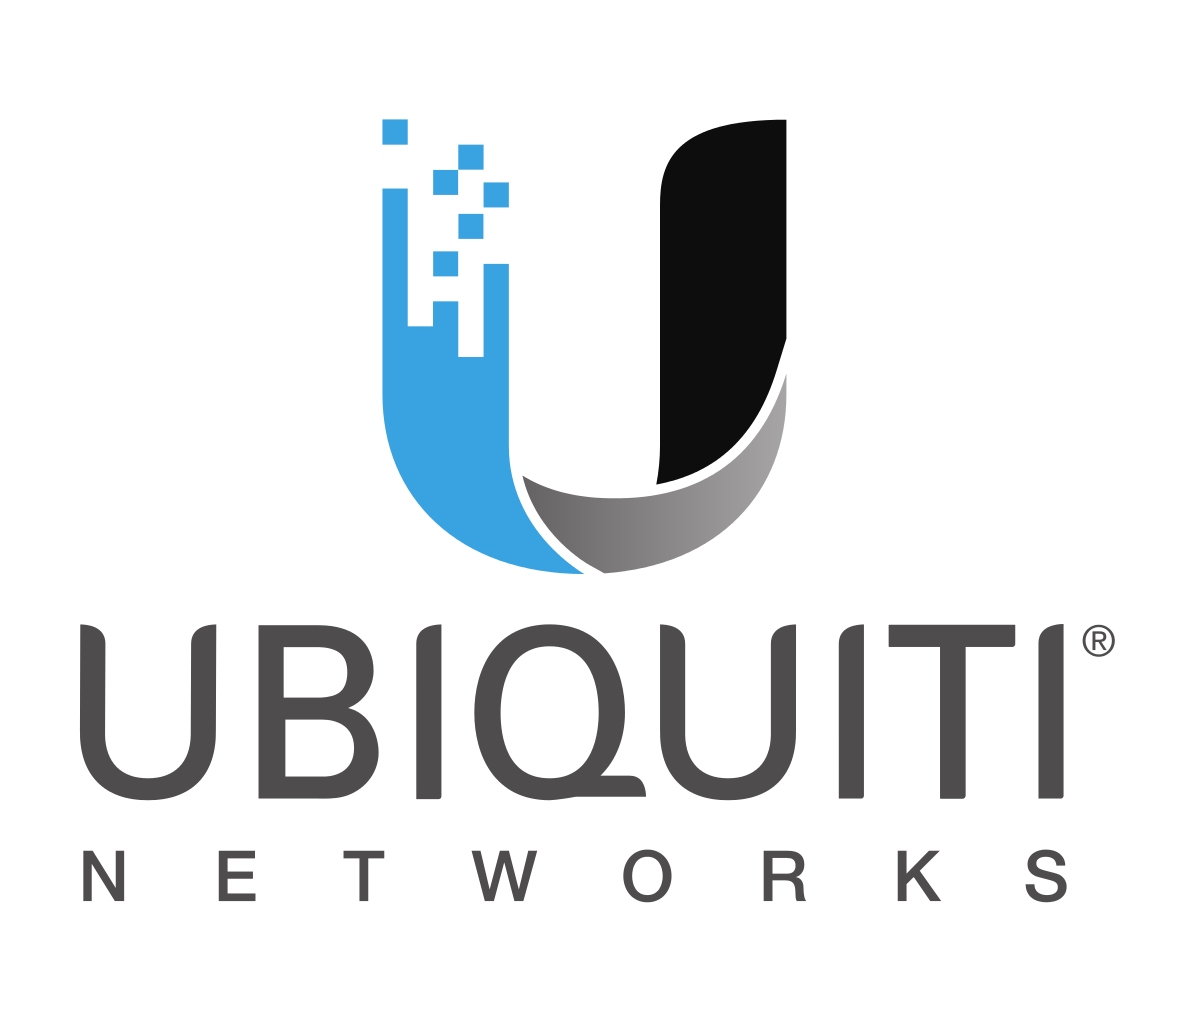 Ubiquiti_Networks_2016.svg